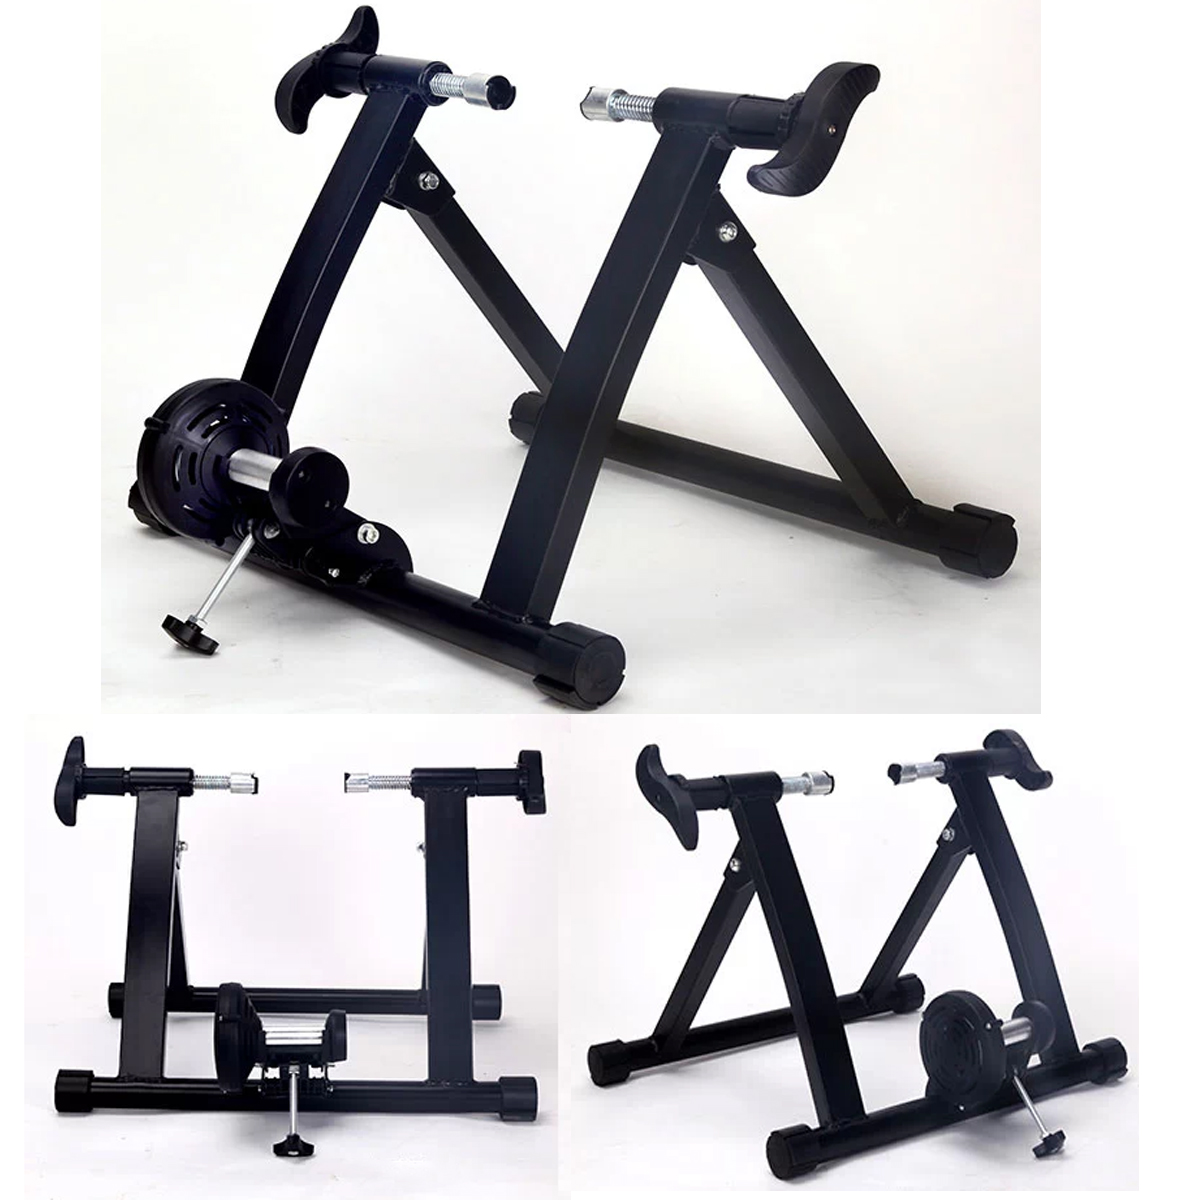 Foldable Indoor Bike Trainer Portable Exercise Bicycle Magnetic Training Stand